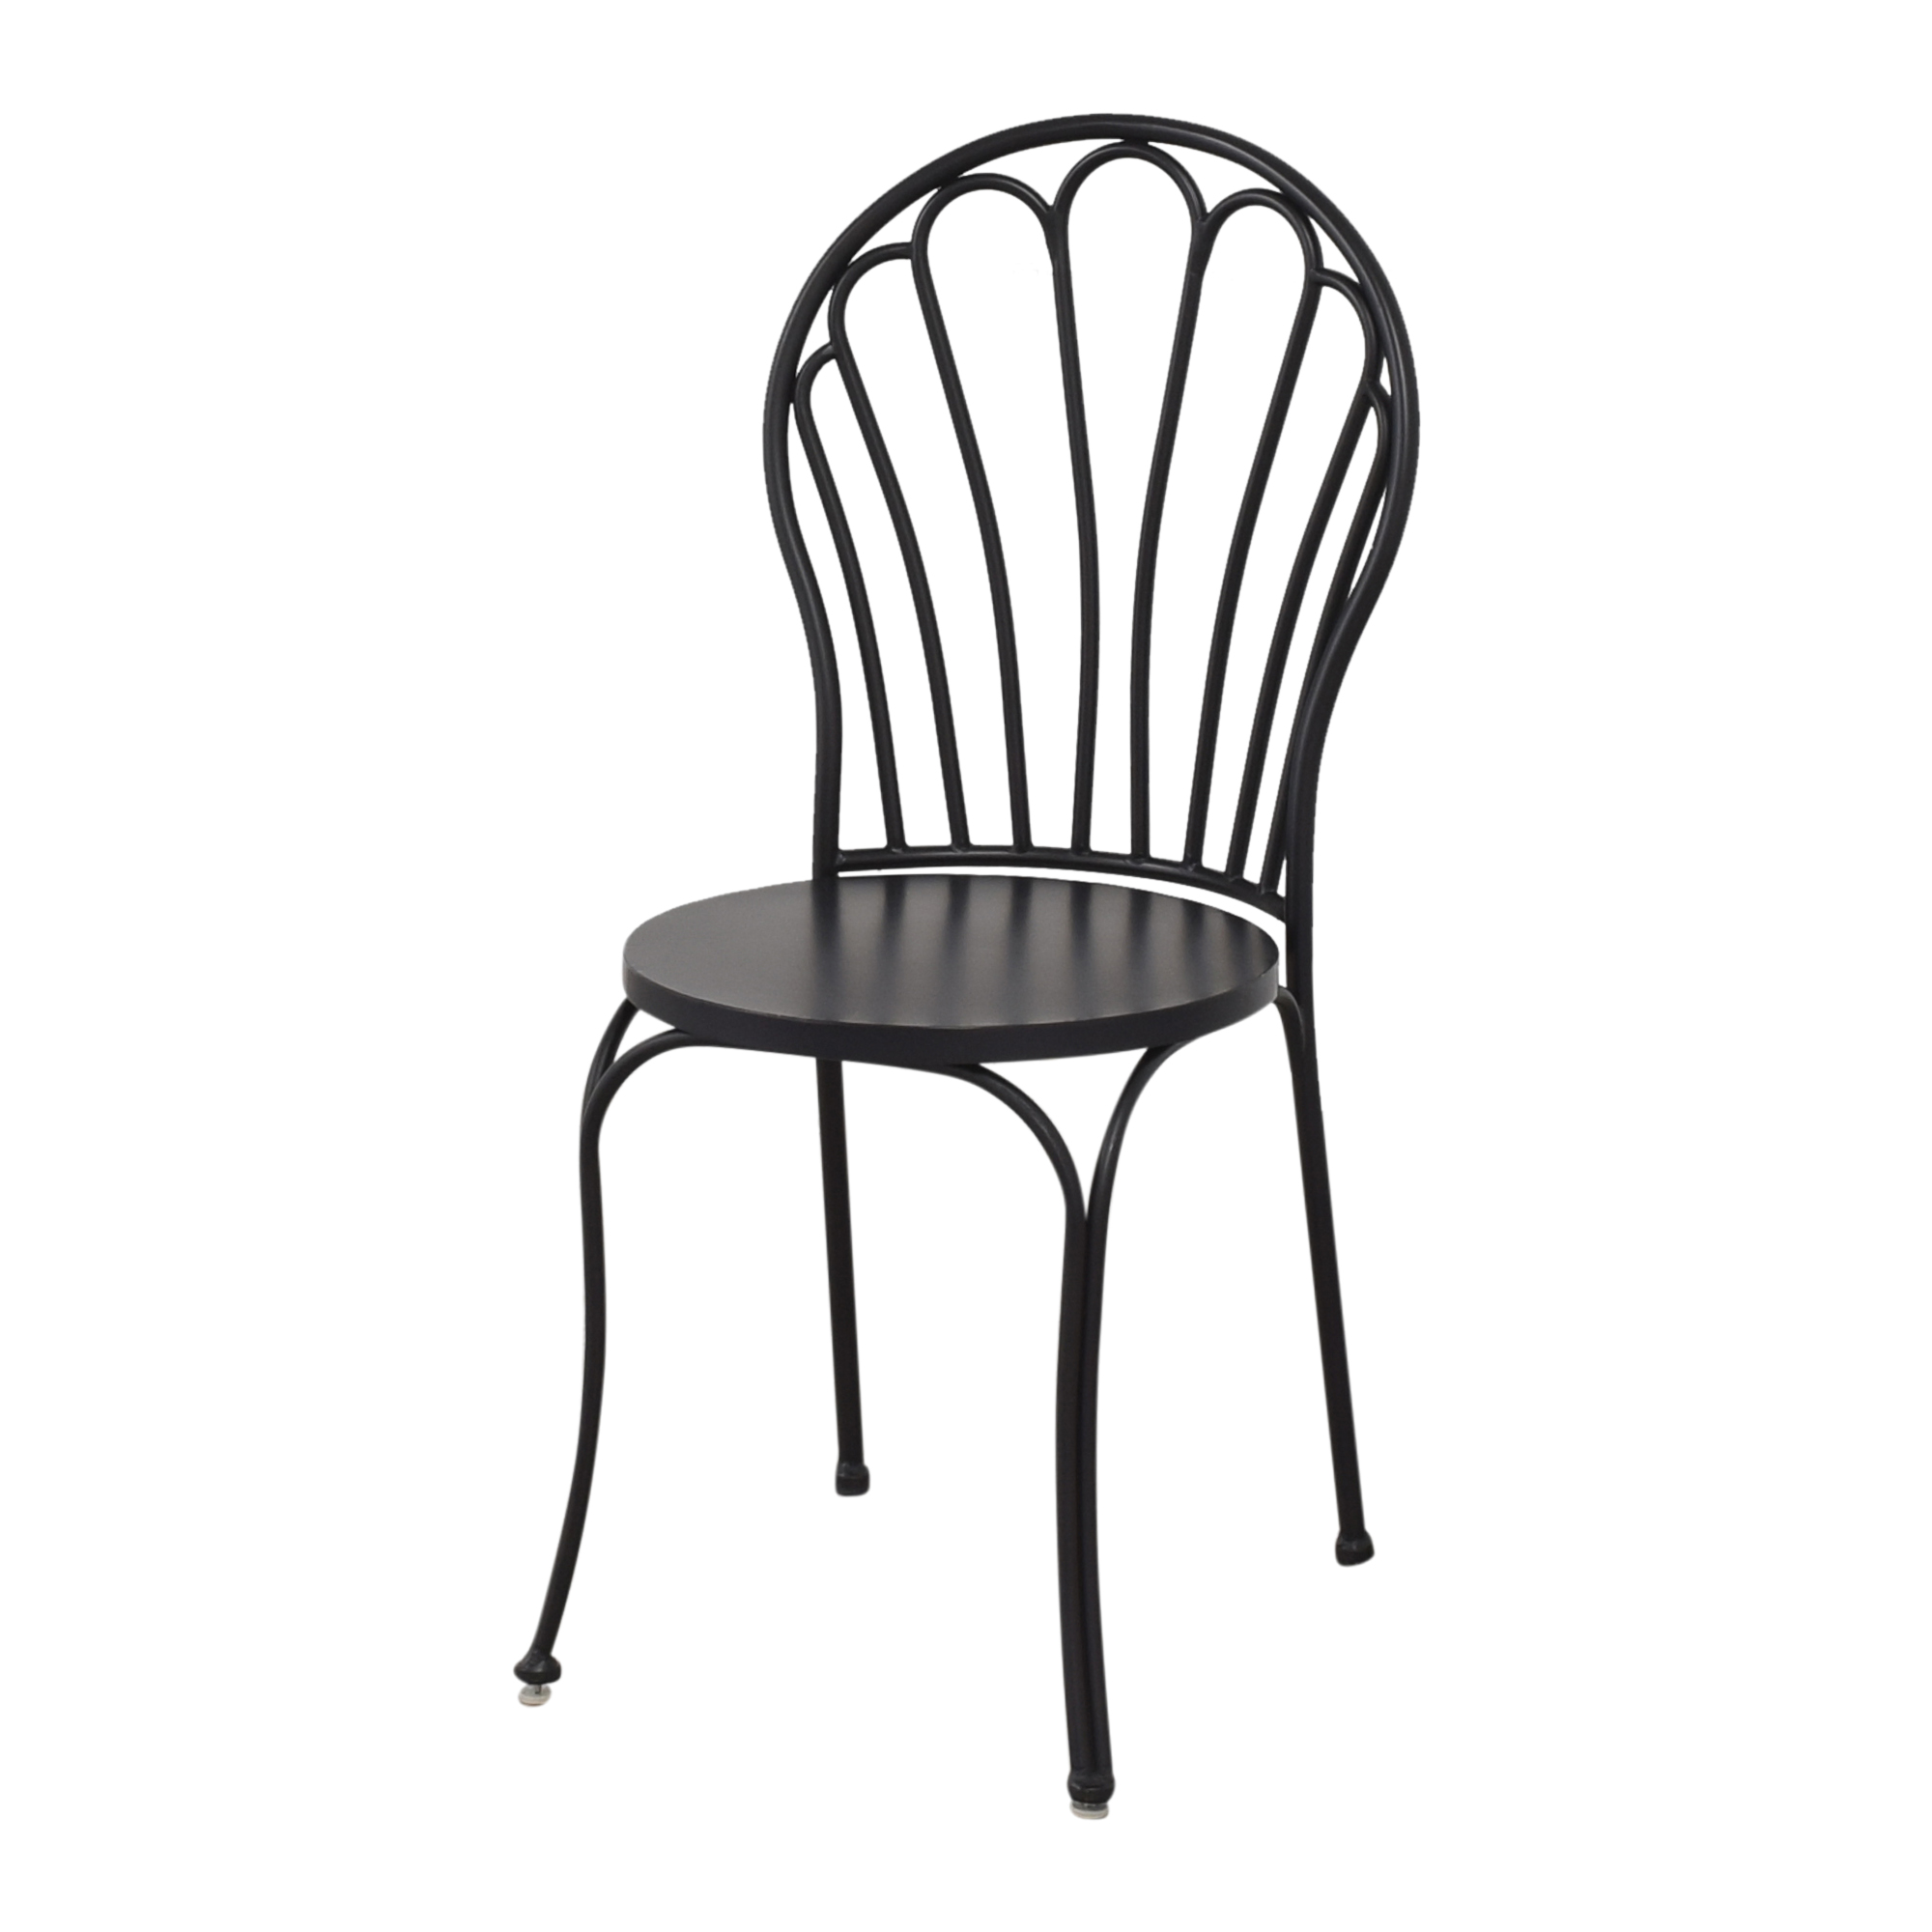 buy Magnolia Home Dining Chairs Magnolia Home Dining Chairs